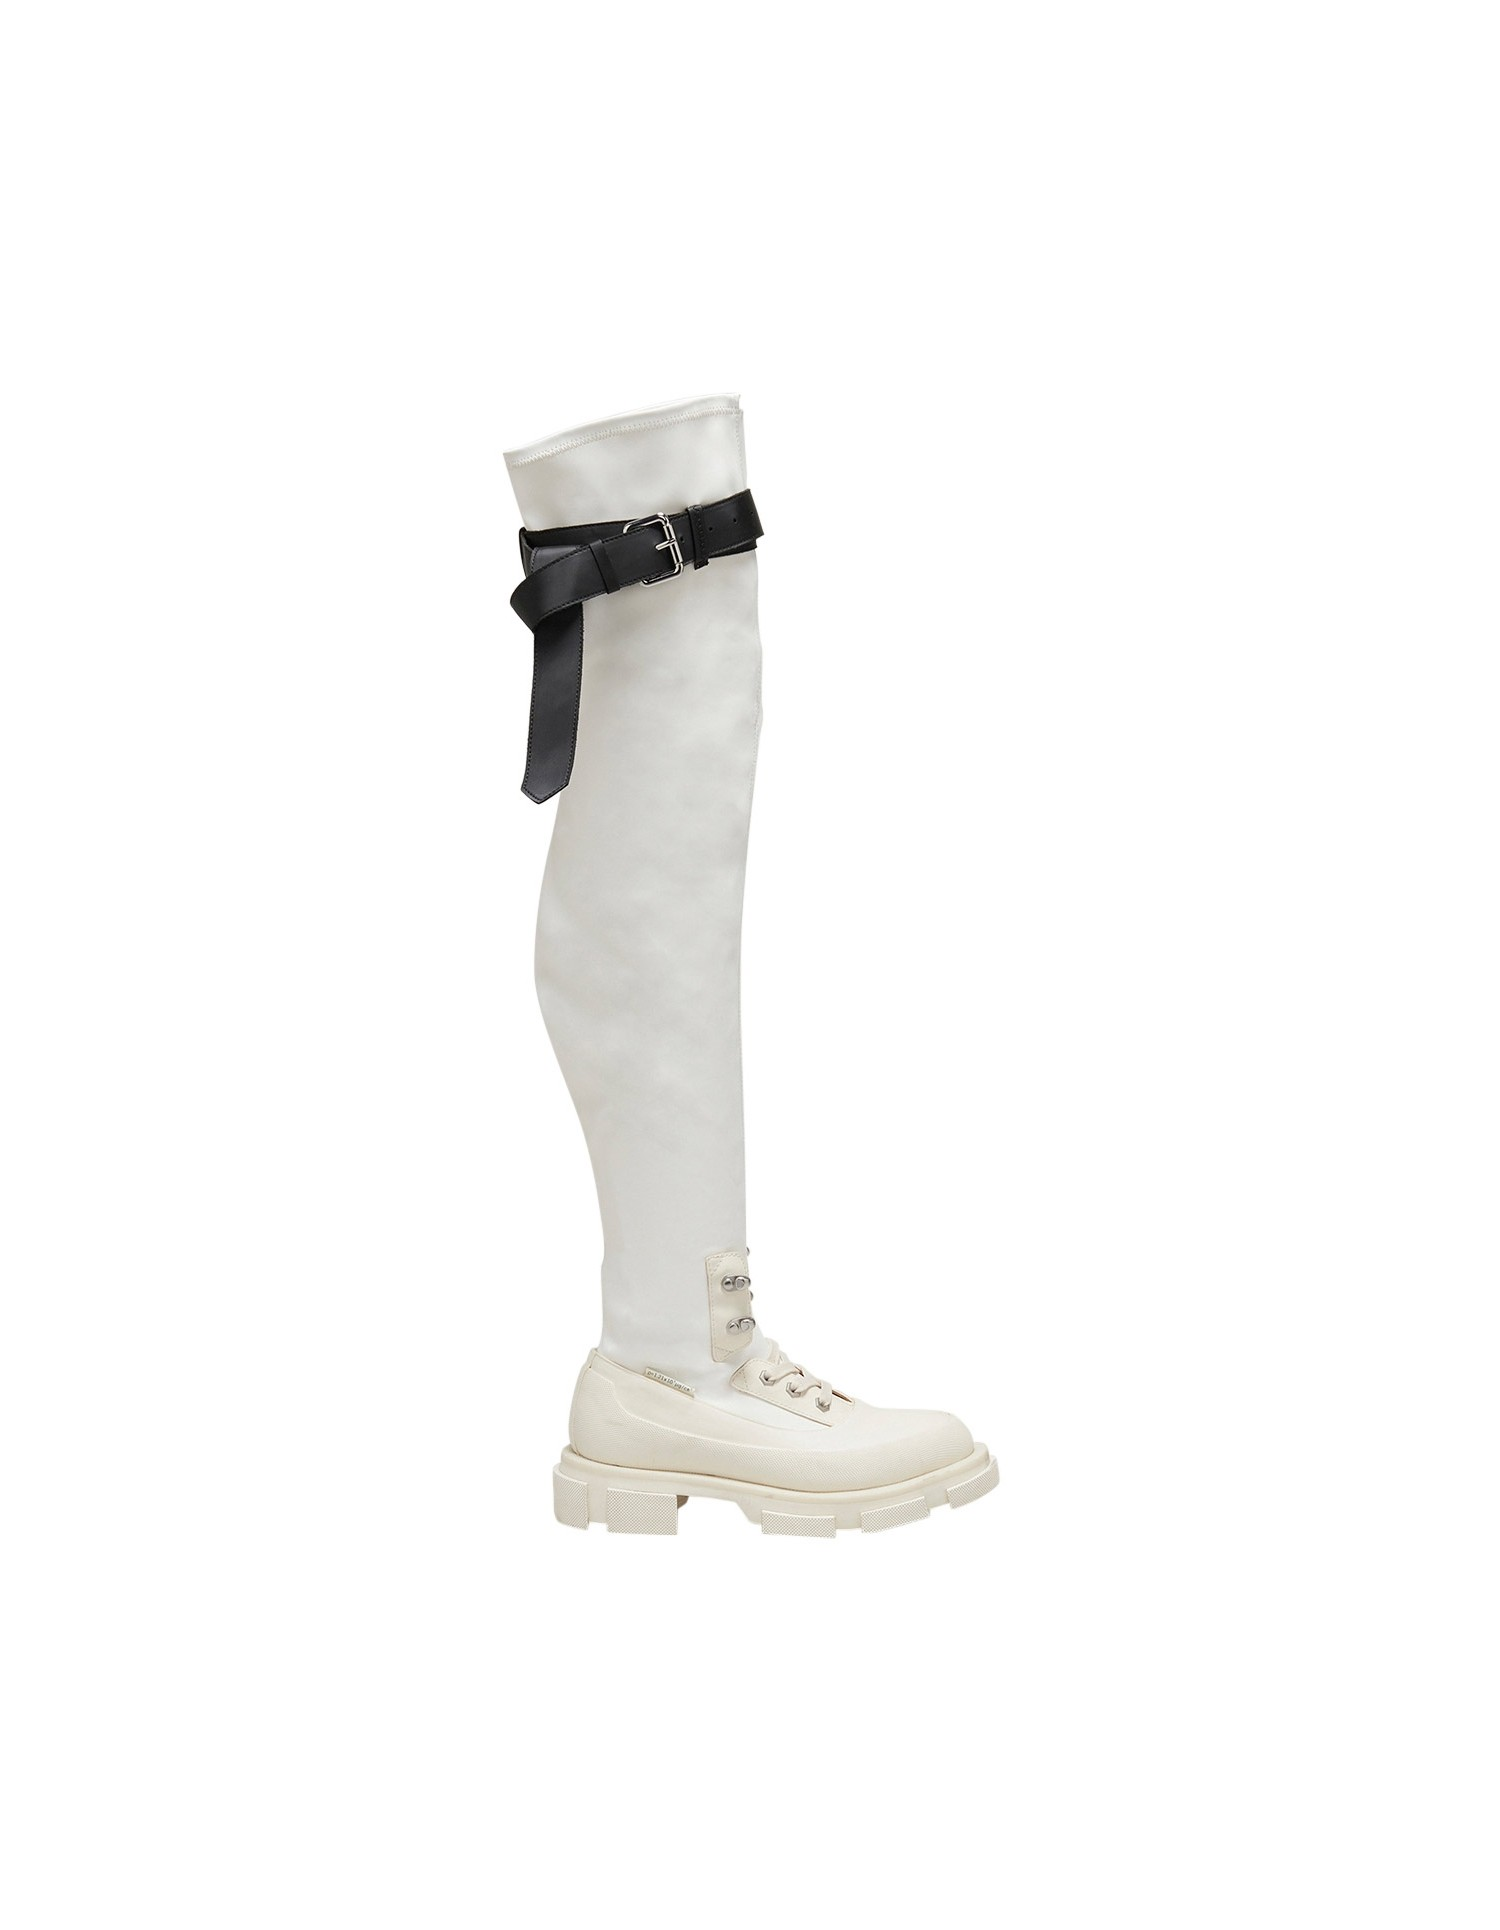 Both x MONSE Gao Thigh High Boots in White and Black Right Side View